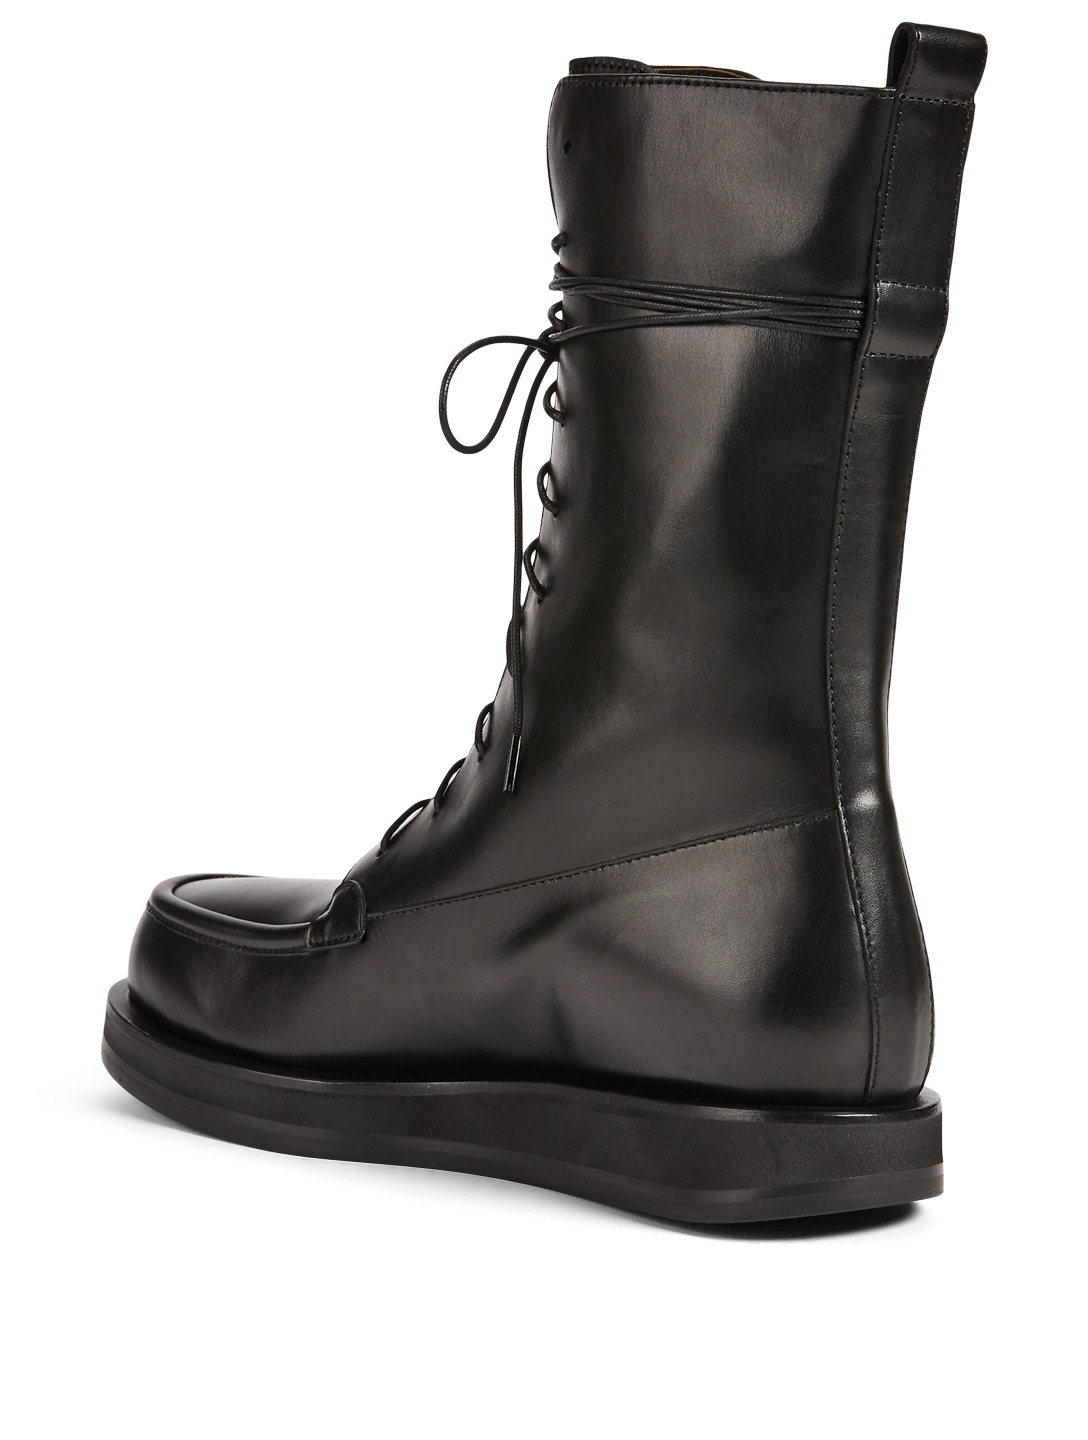 THE ROW Patty Leather Combat Boots Women's Black